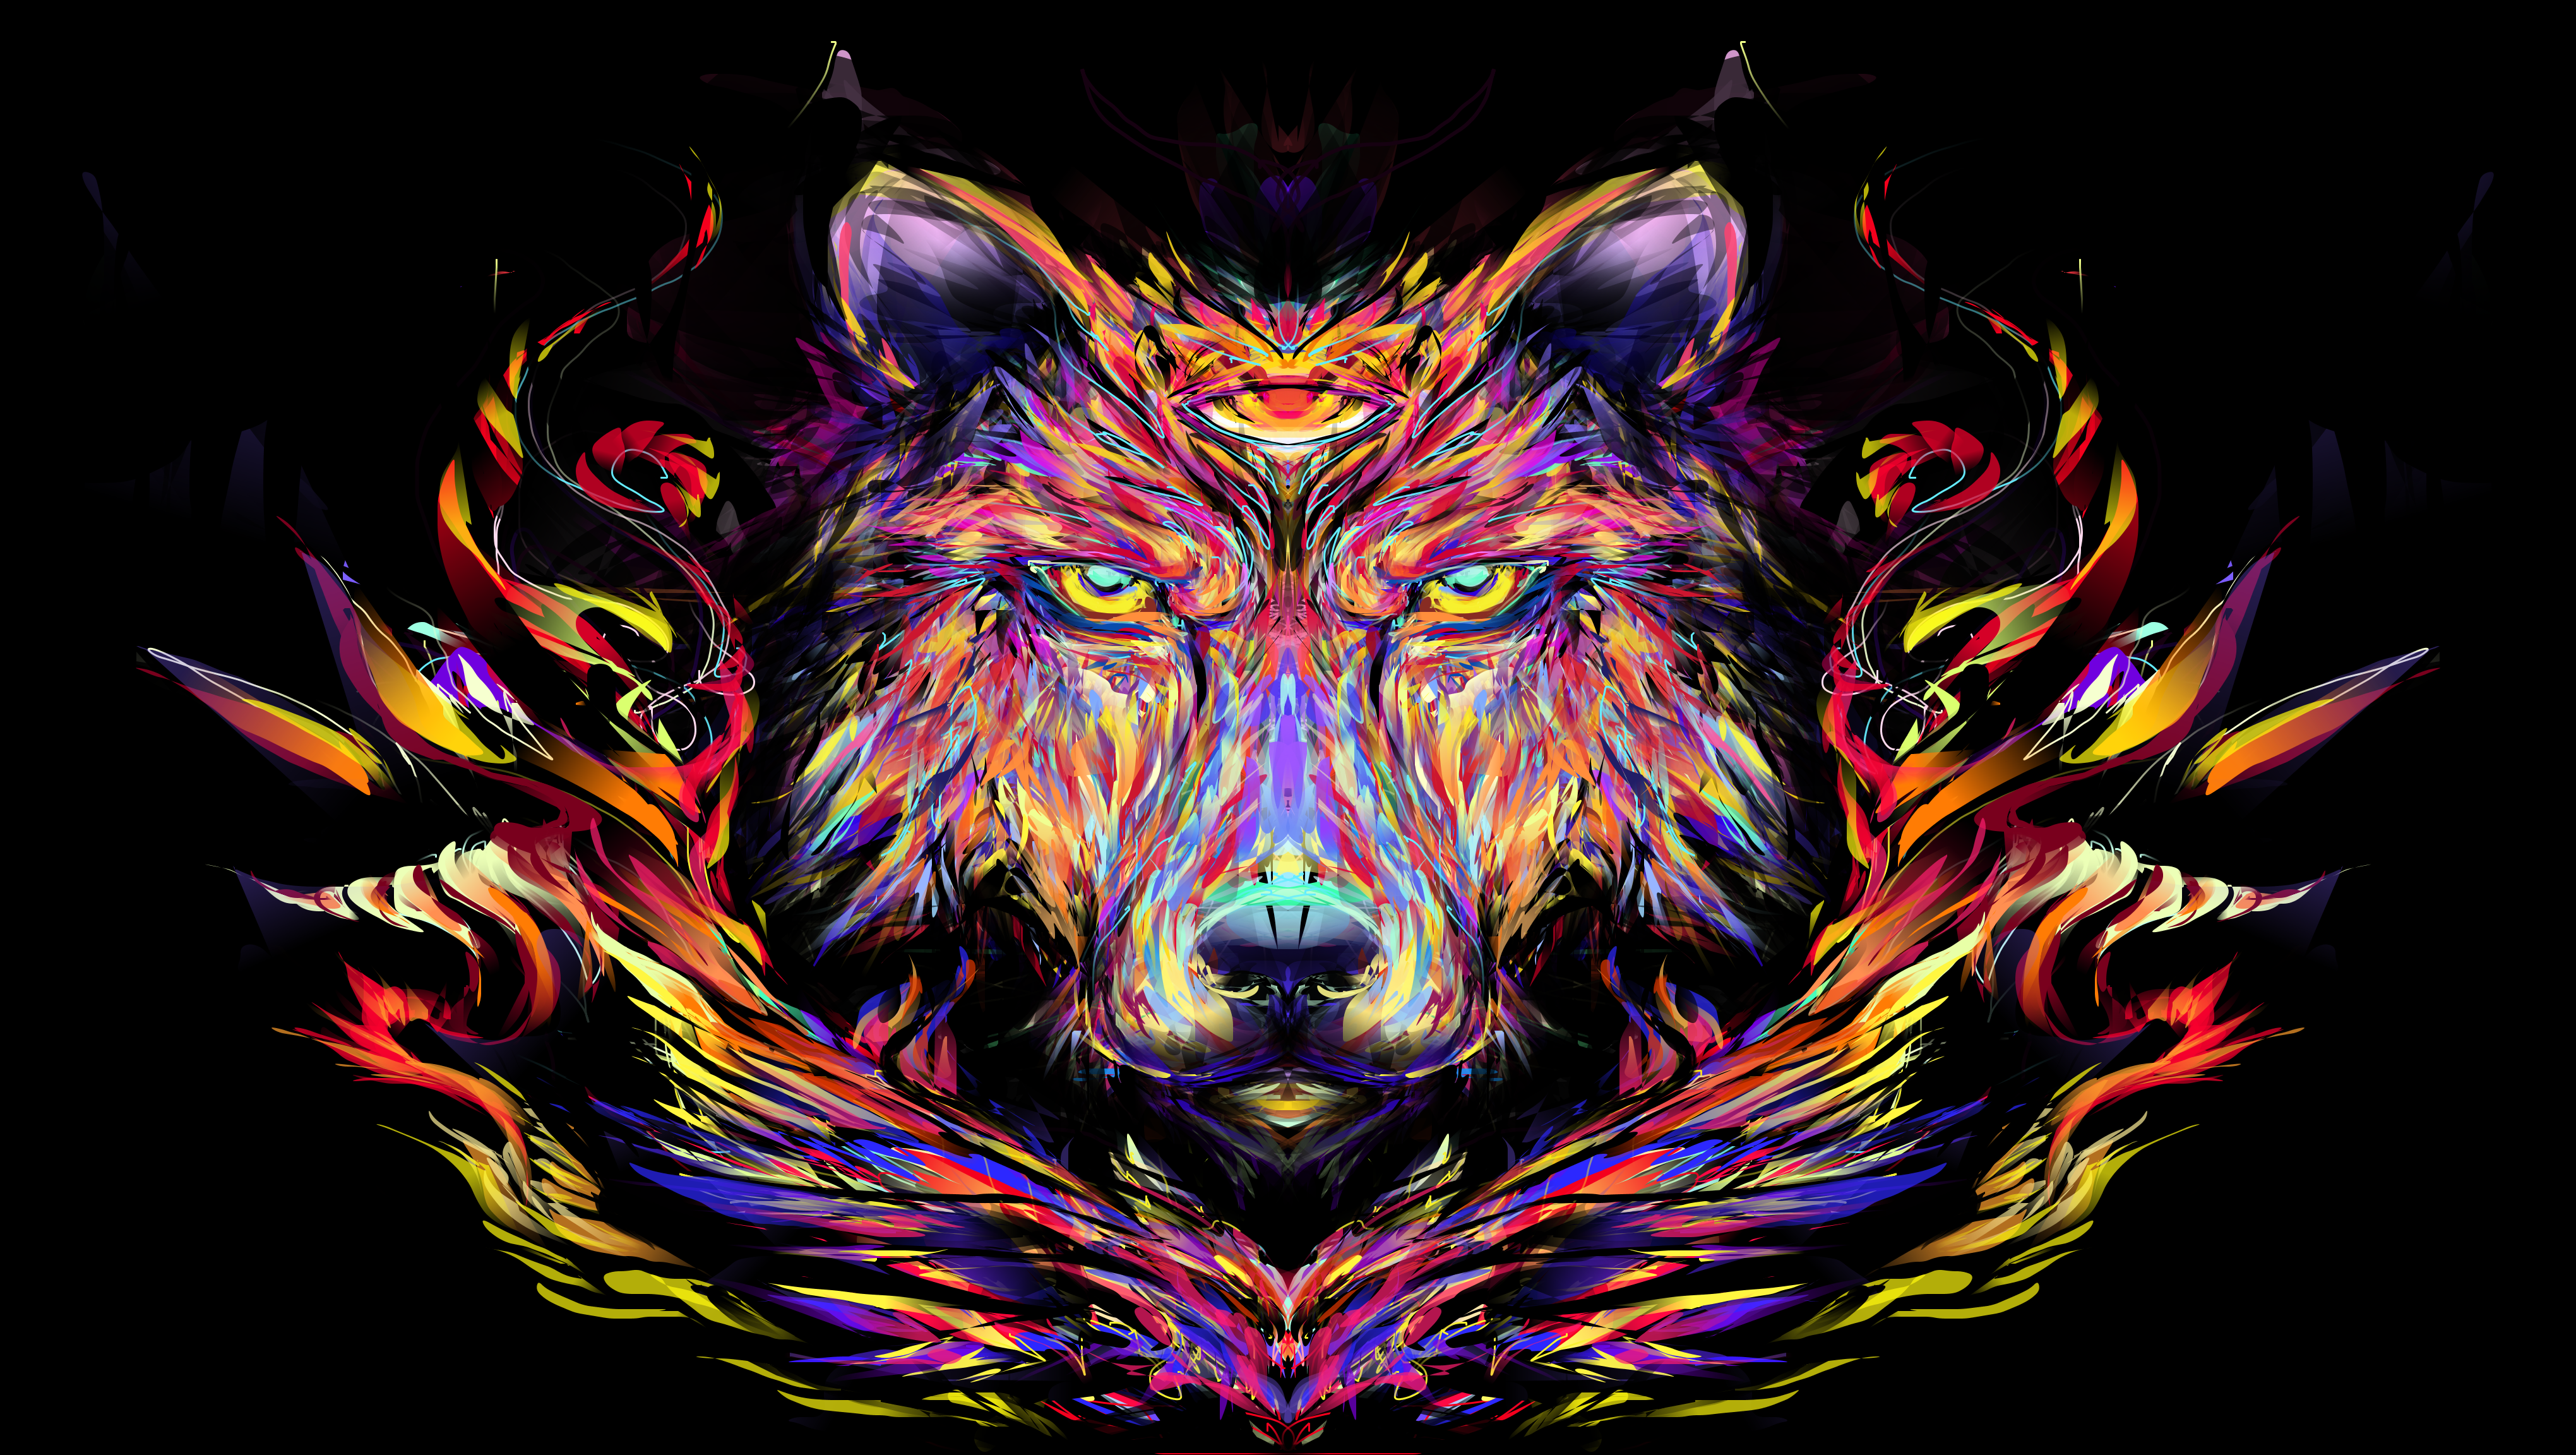 28 Psychedelic QHD wallpapers that will make your ...